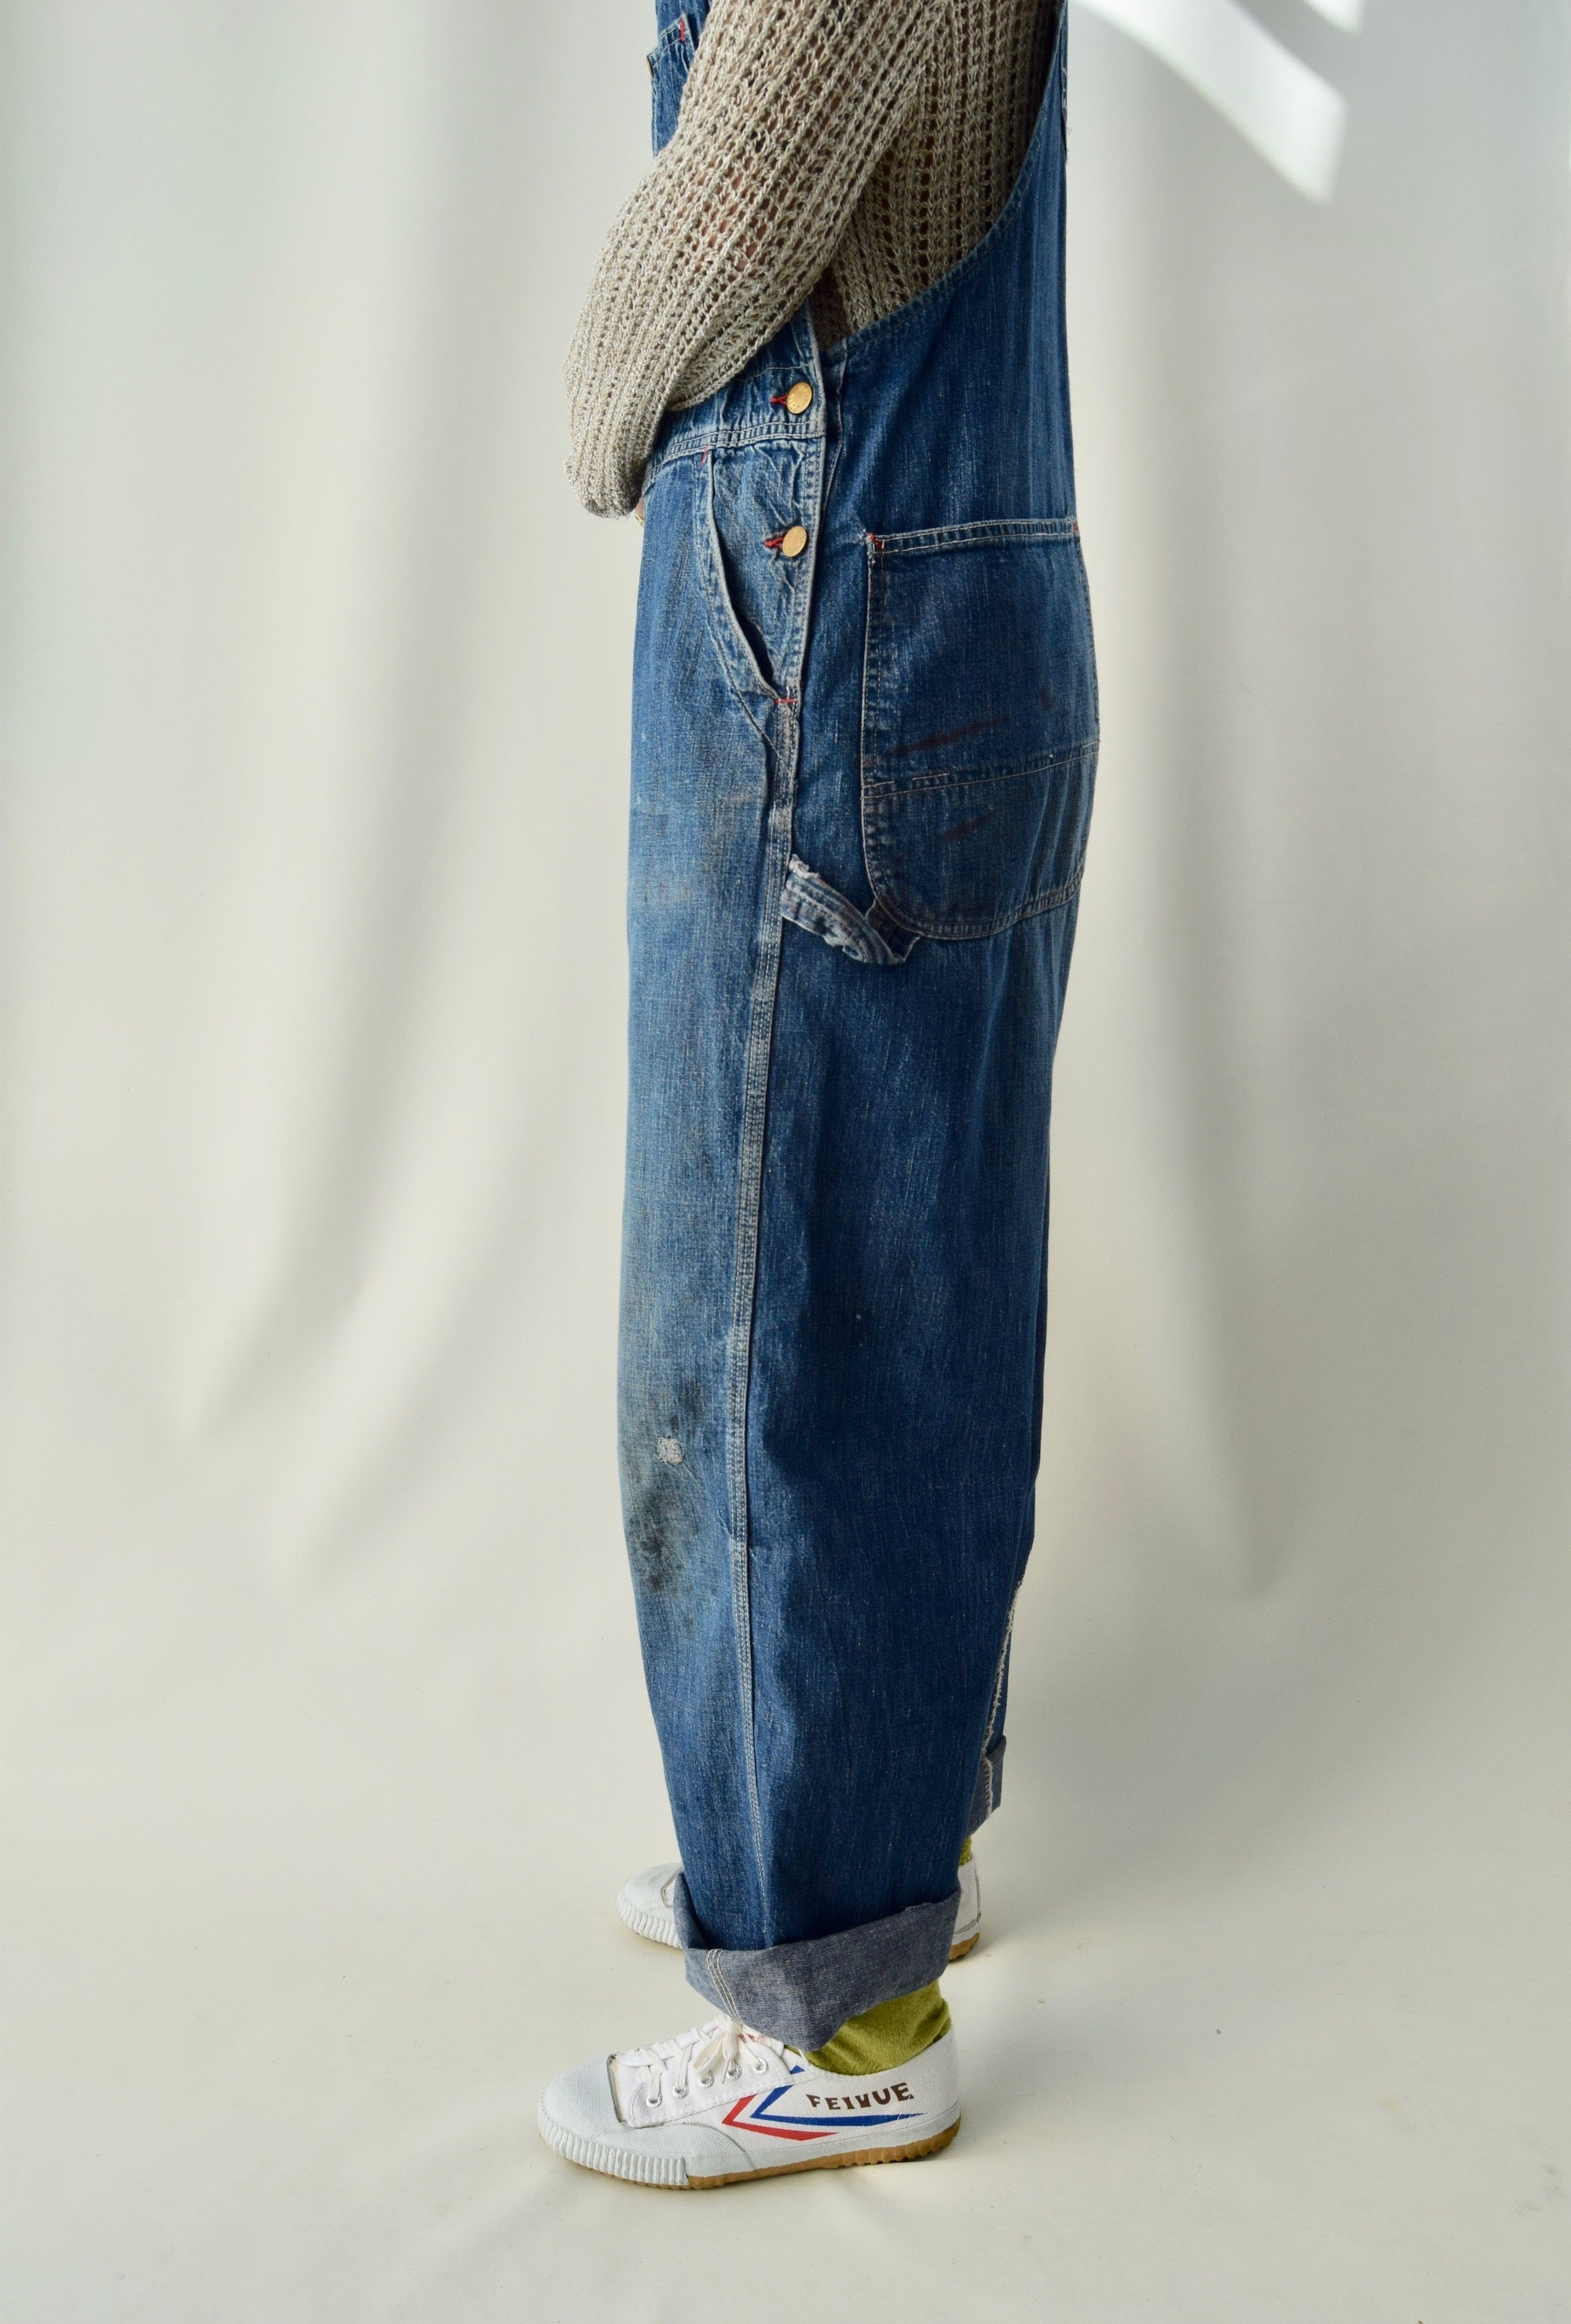 Vintage 1950's Black Bear Brand Denim Overalls